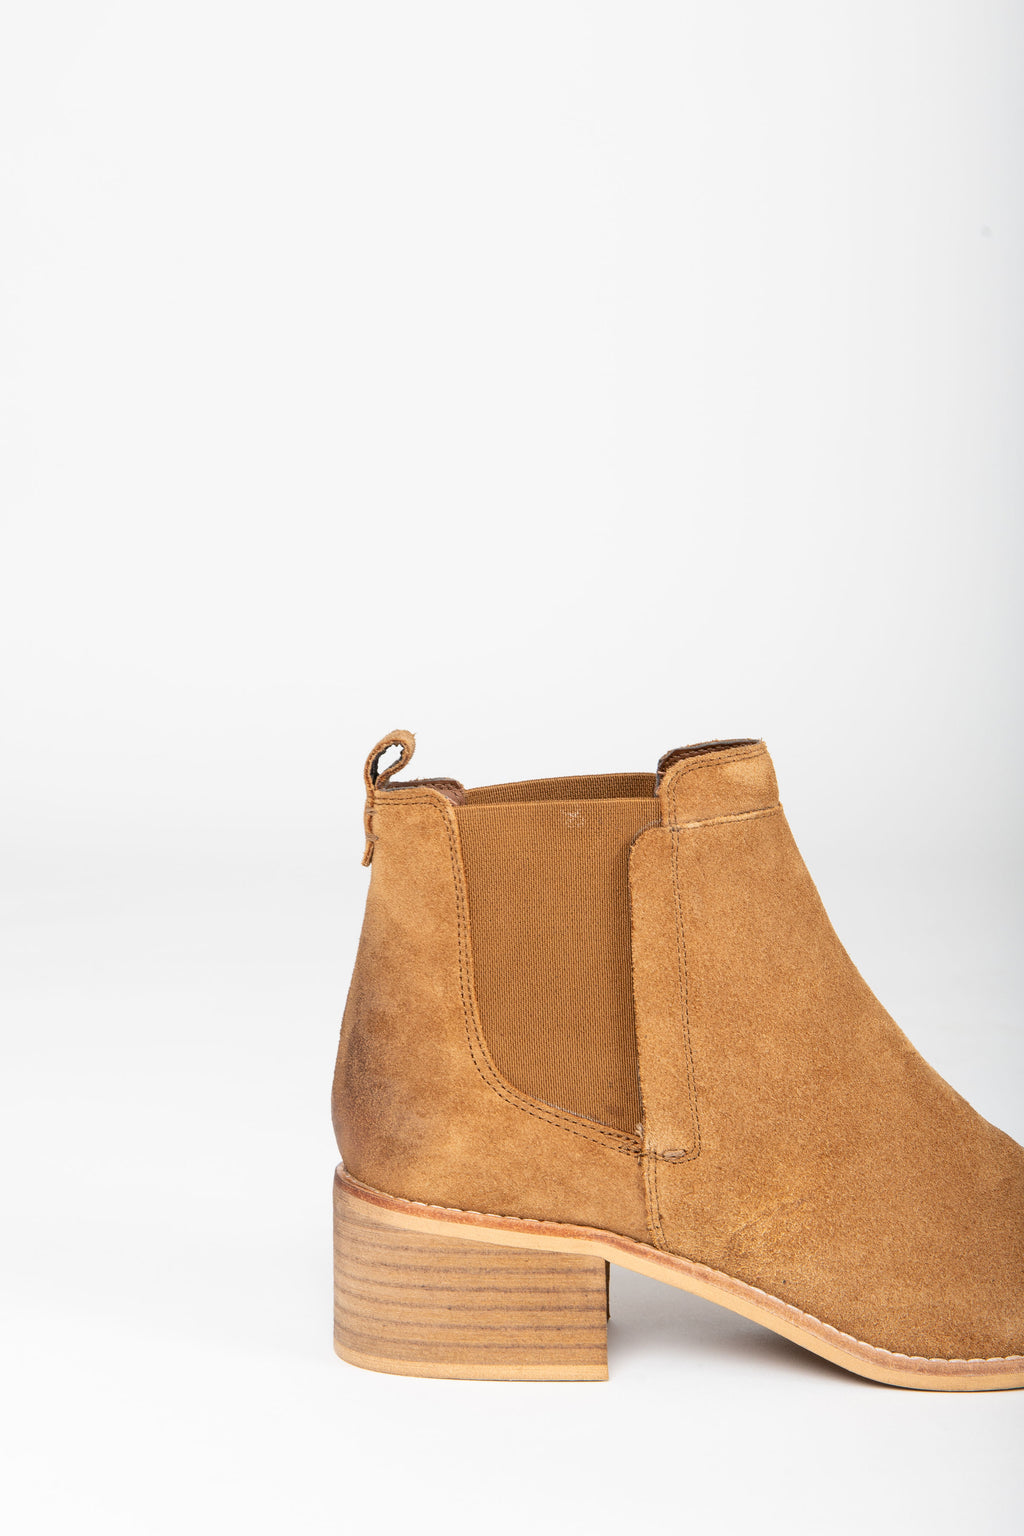 Crevo Footwear: Maeva Boot in Chestnut